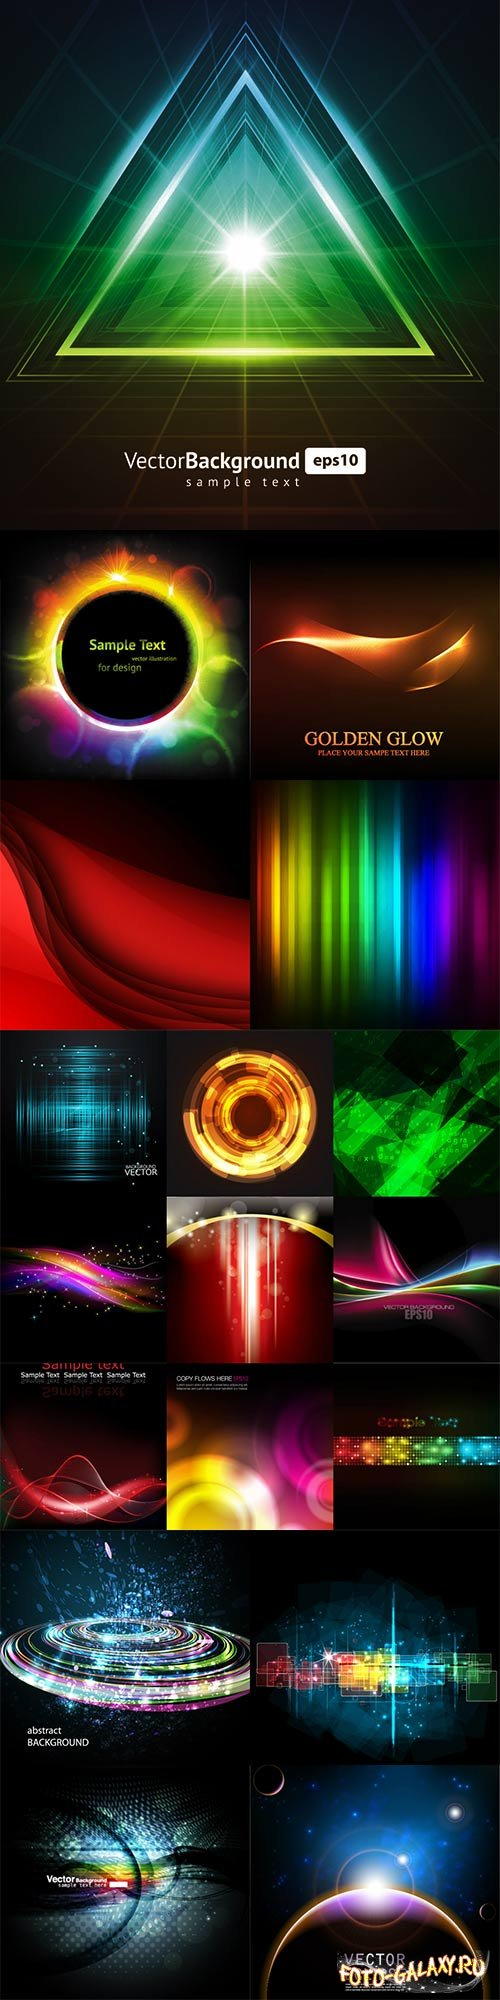 Abstract glowing on a dark background